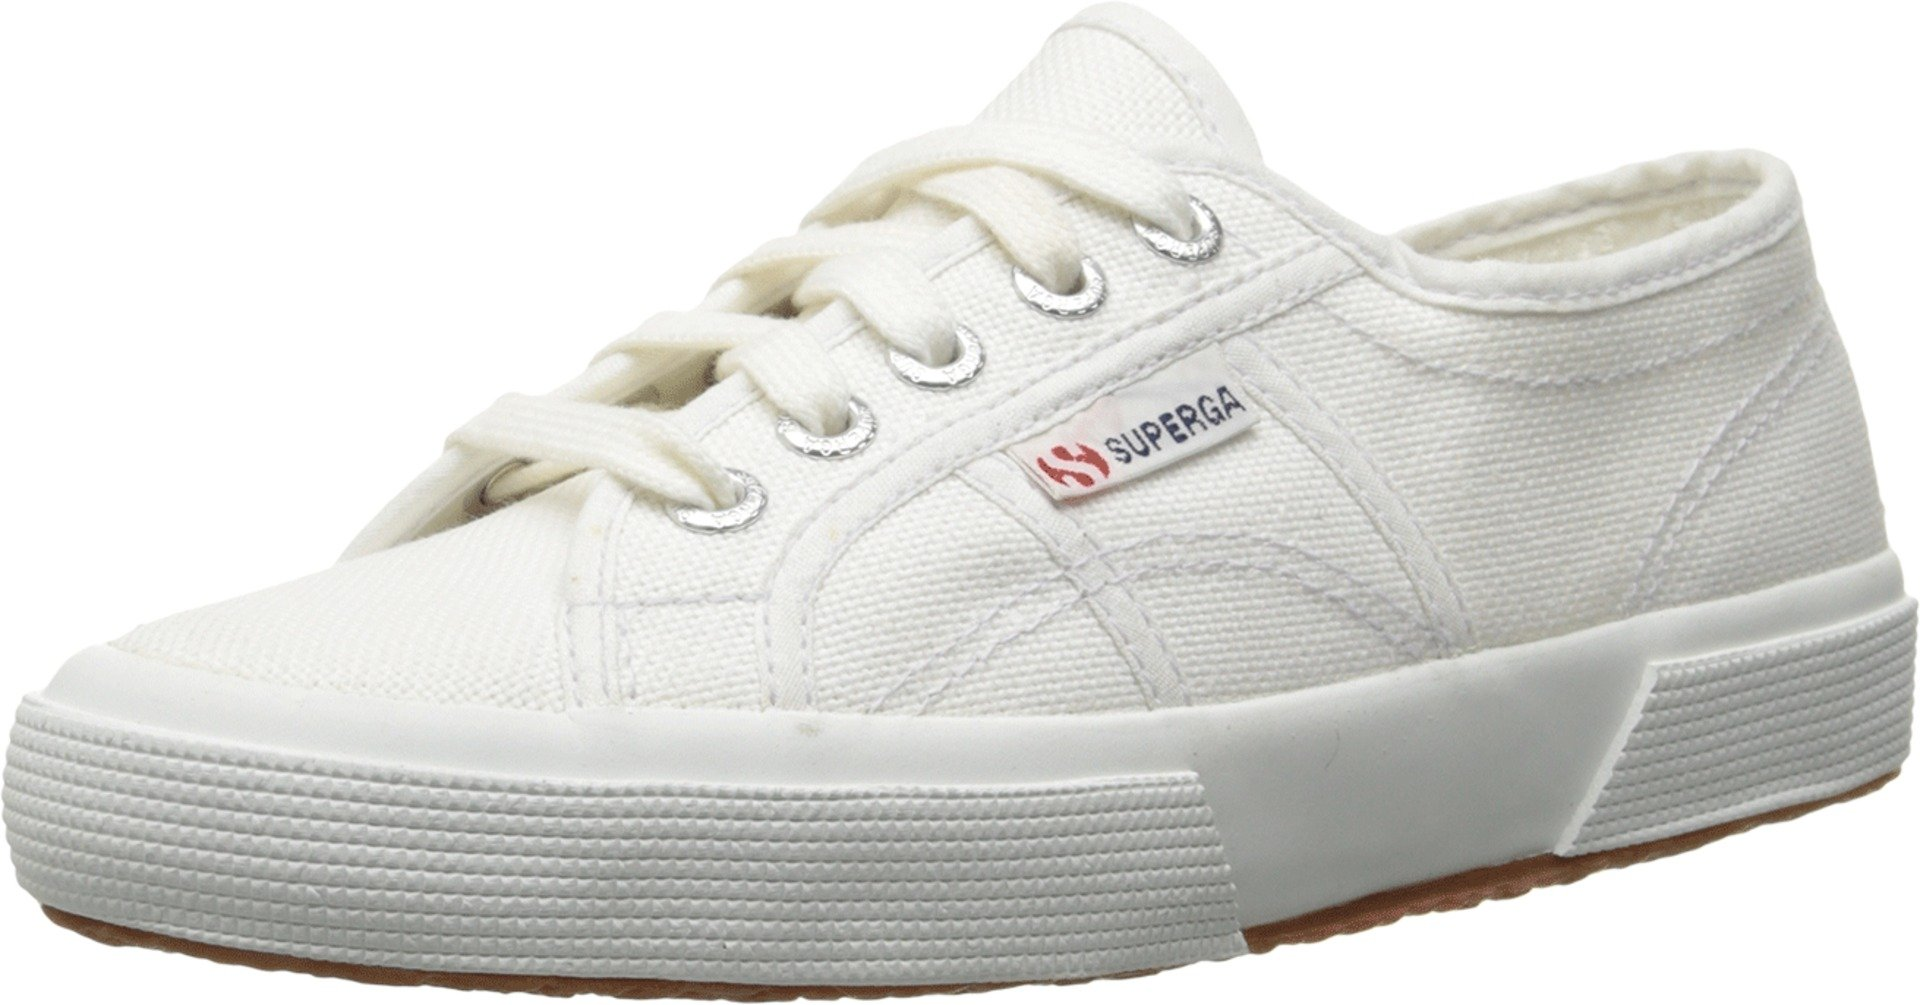 Superga Kids' 2750 JCOT Classic (Toddler/LK), White, 29 EU/ 11 US